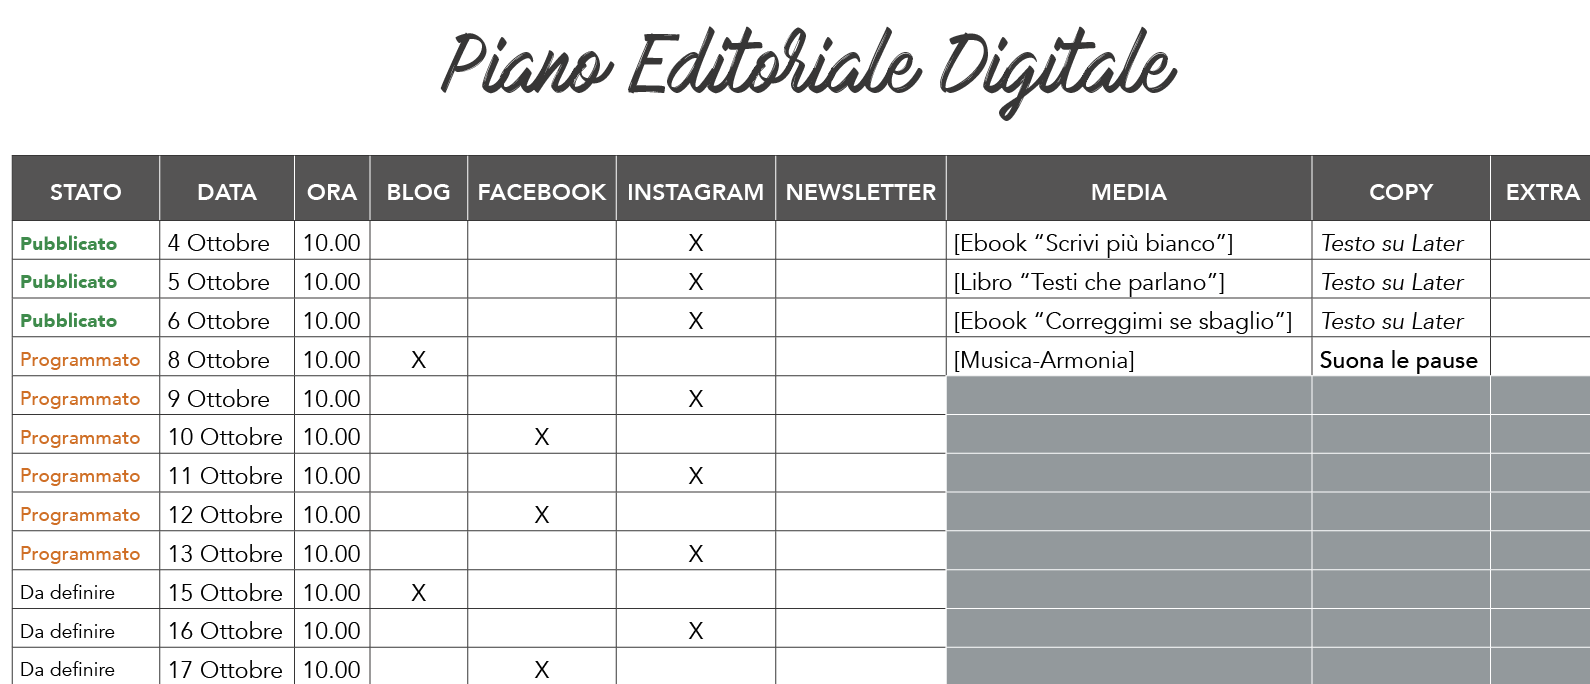 piano editoriale digitale PED